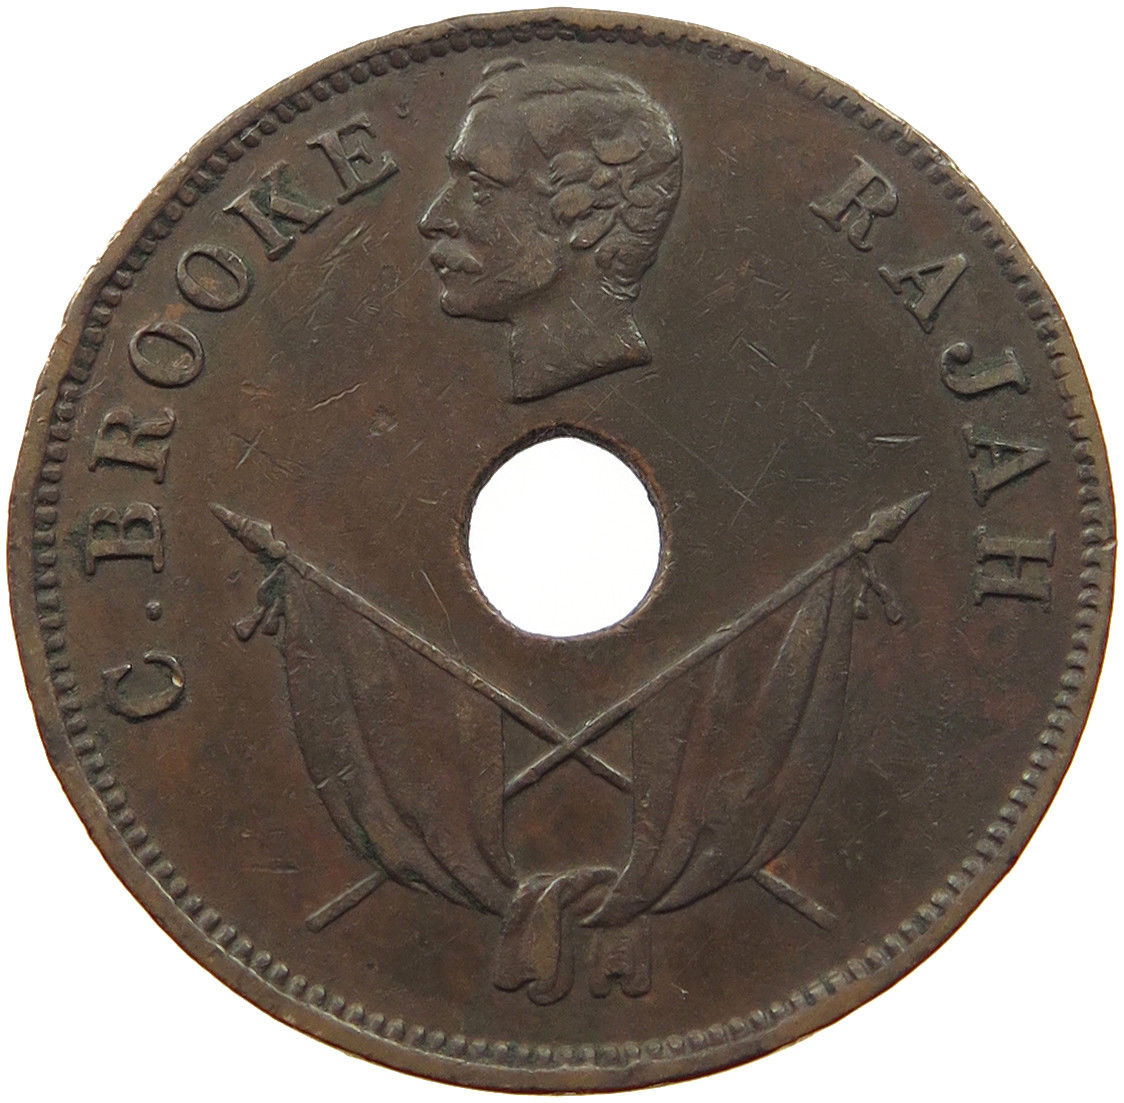 One Cent 1894: Photo Sarawak Cent 1894